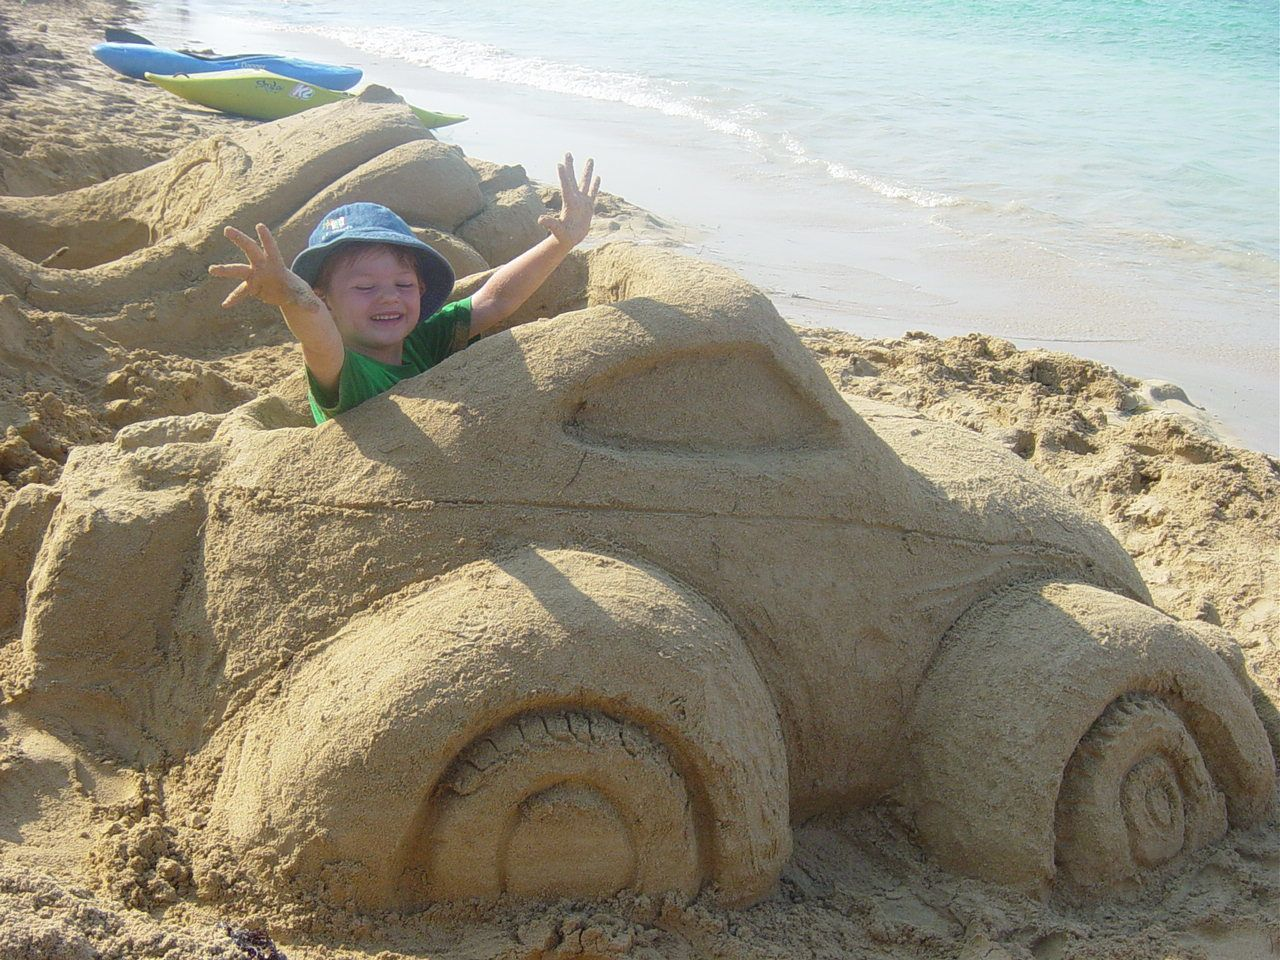 fun idea for a sand castle..just build their favorite car to